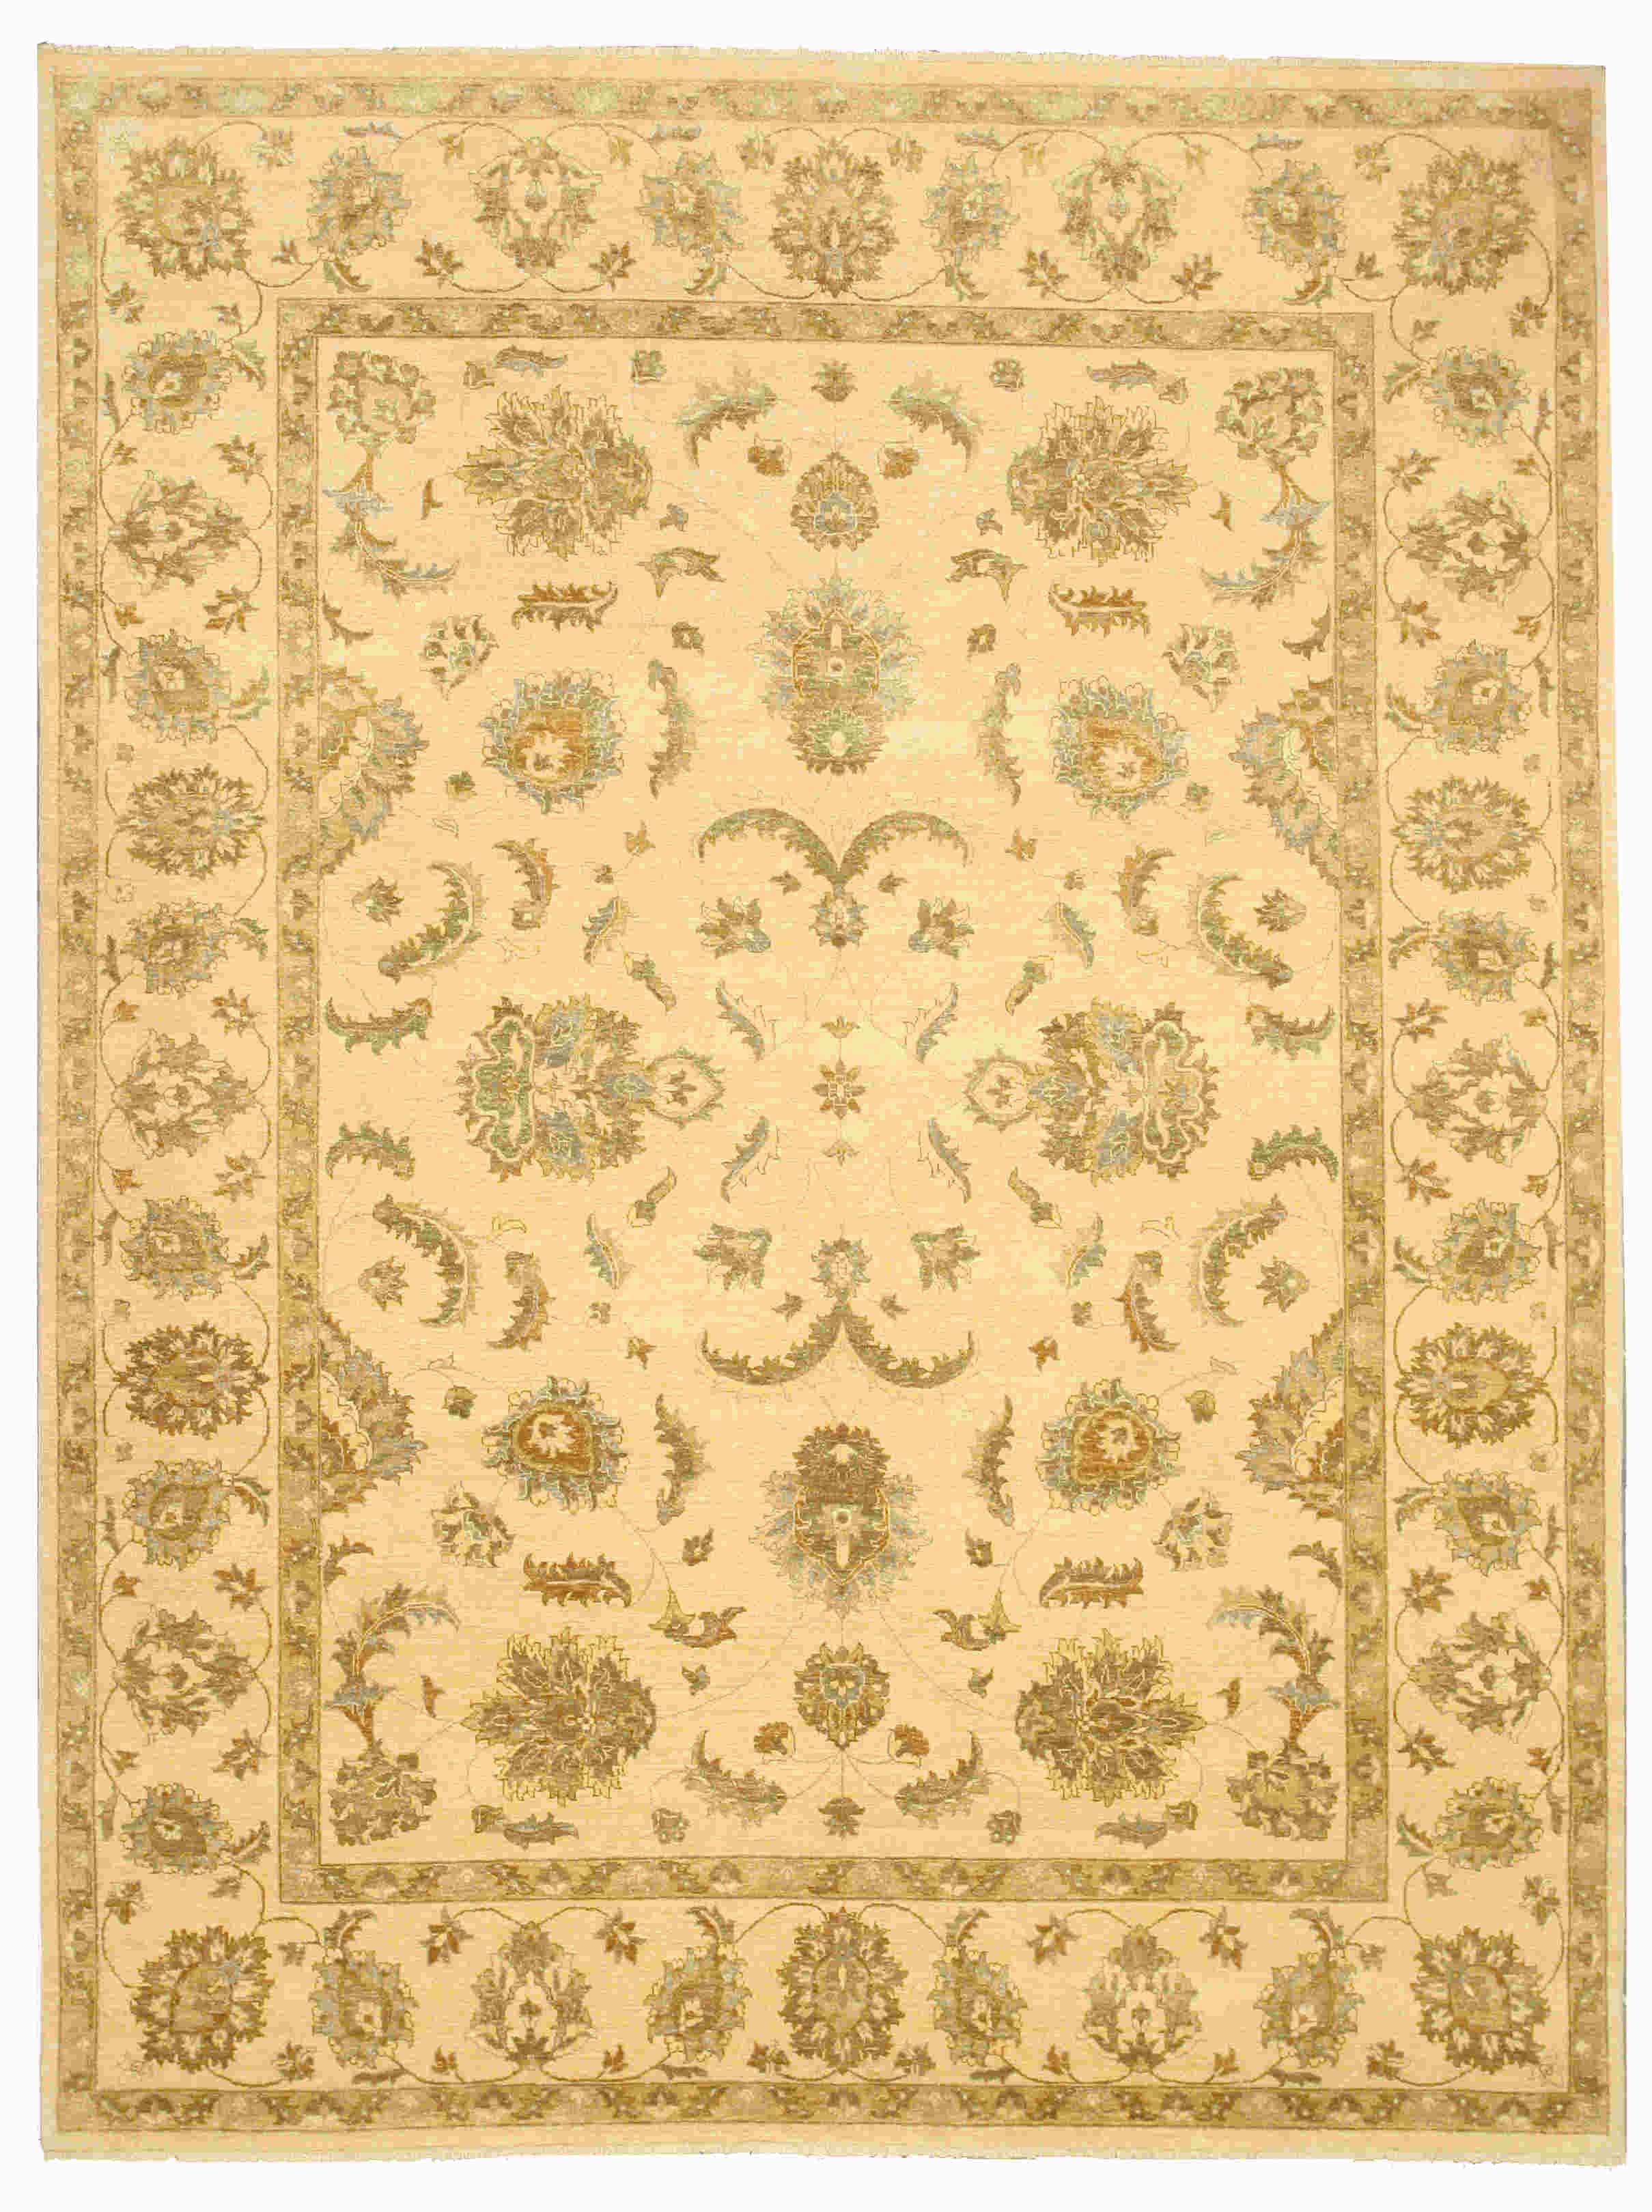 EORC 9123 Ivory Hand Knotted Wool Agra Rug